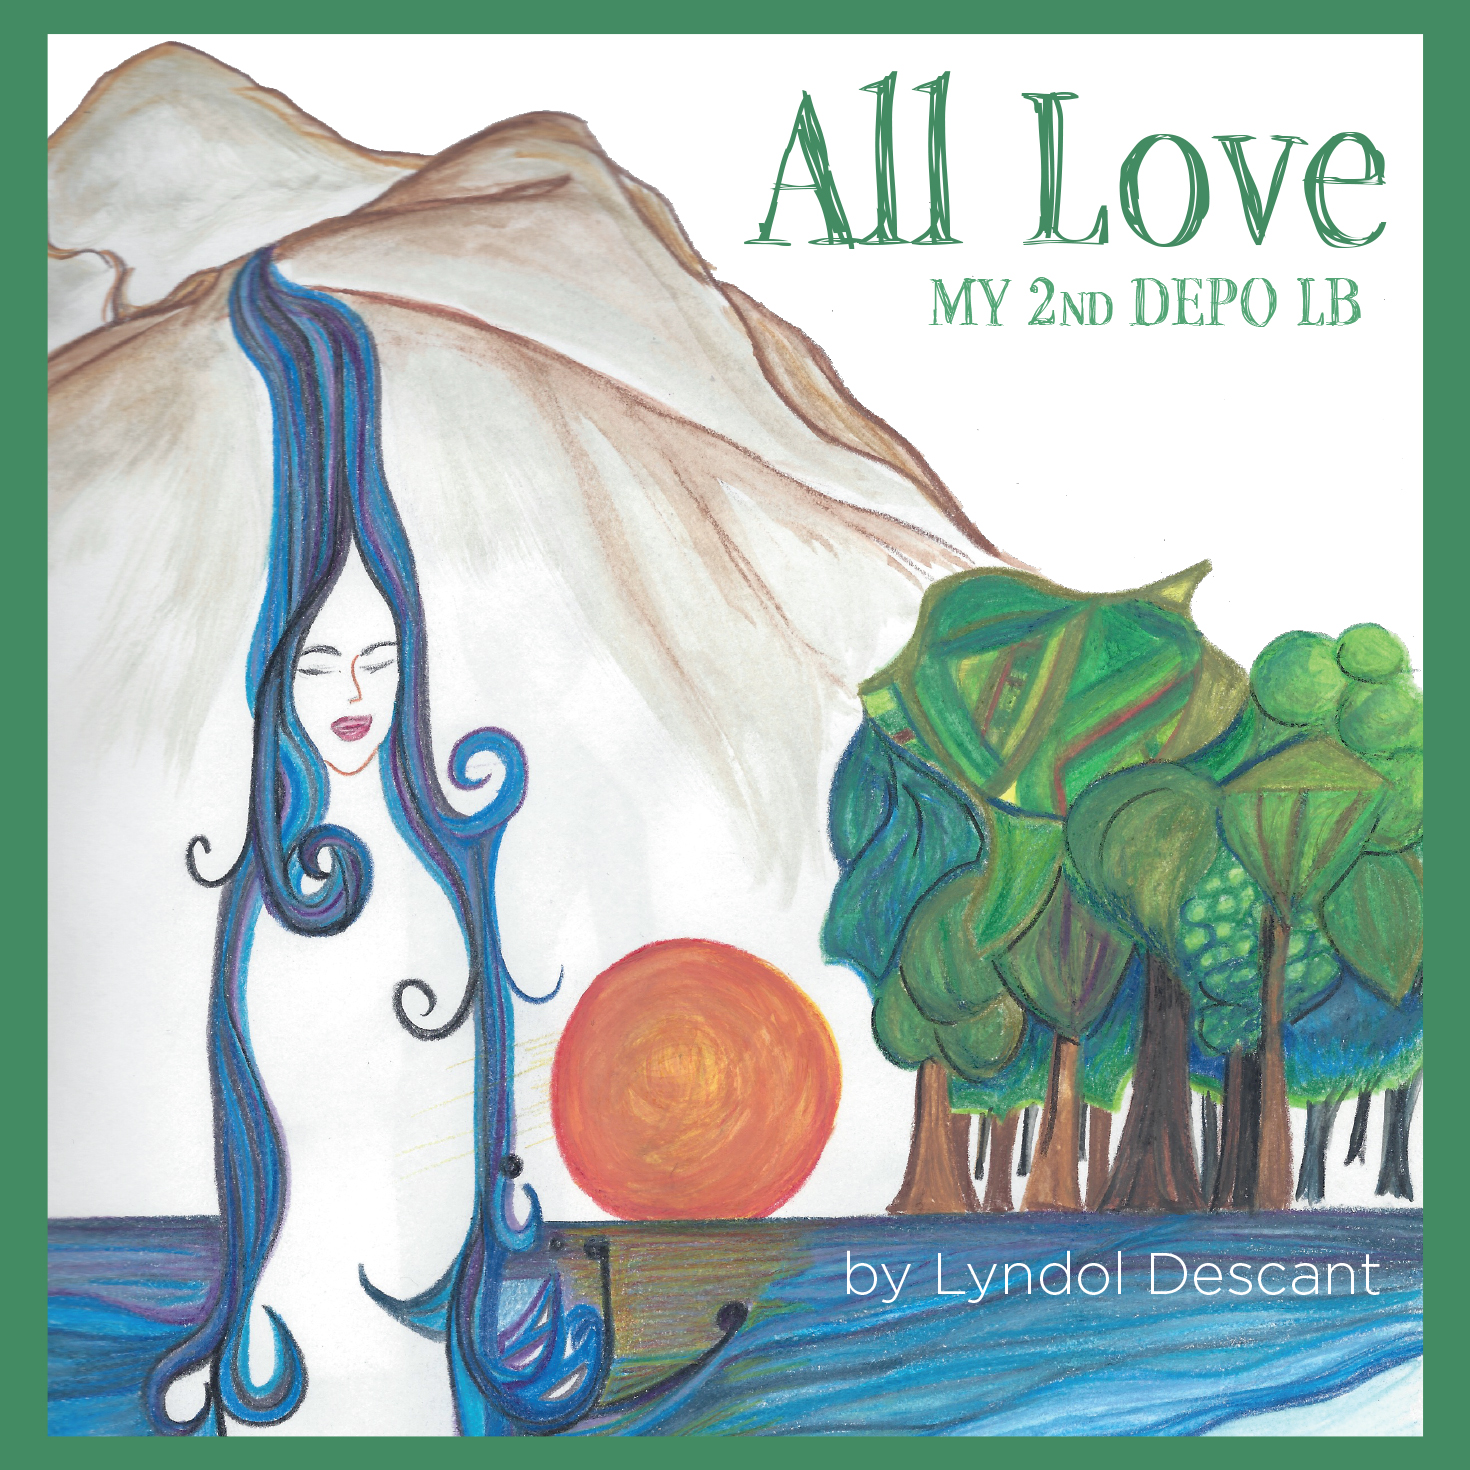 All Love EP (2018)An eclectic mix of emotions, mad skill, connection to nature, and creativity. Largely piano based, with sincere vocals, it is a DIY recording from the Brooklyn local scene. It's Songs explore philosophical, personal and metaphysical quagmires.    - Out now on iTunes, Apple Music, Spotify, Amazon, Google Play, and more!